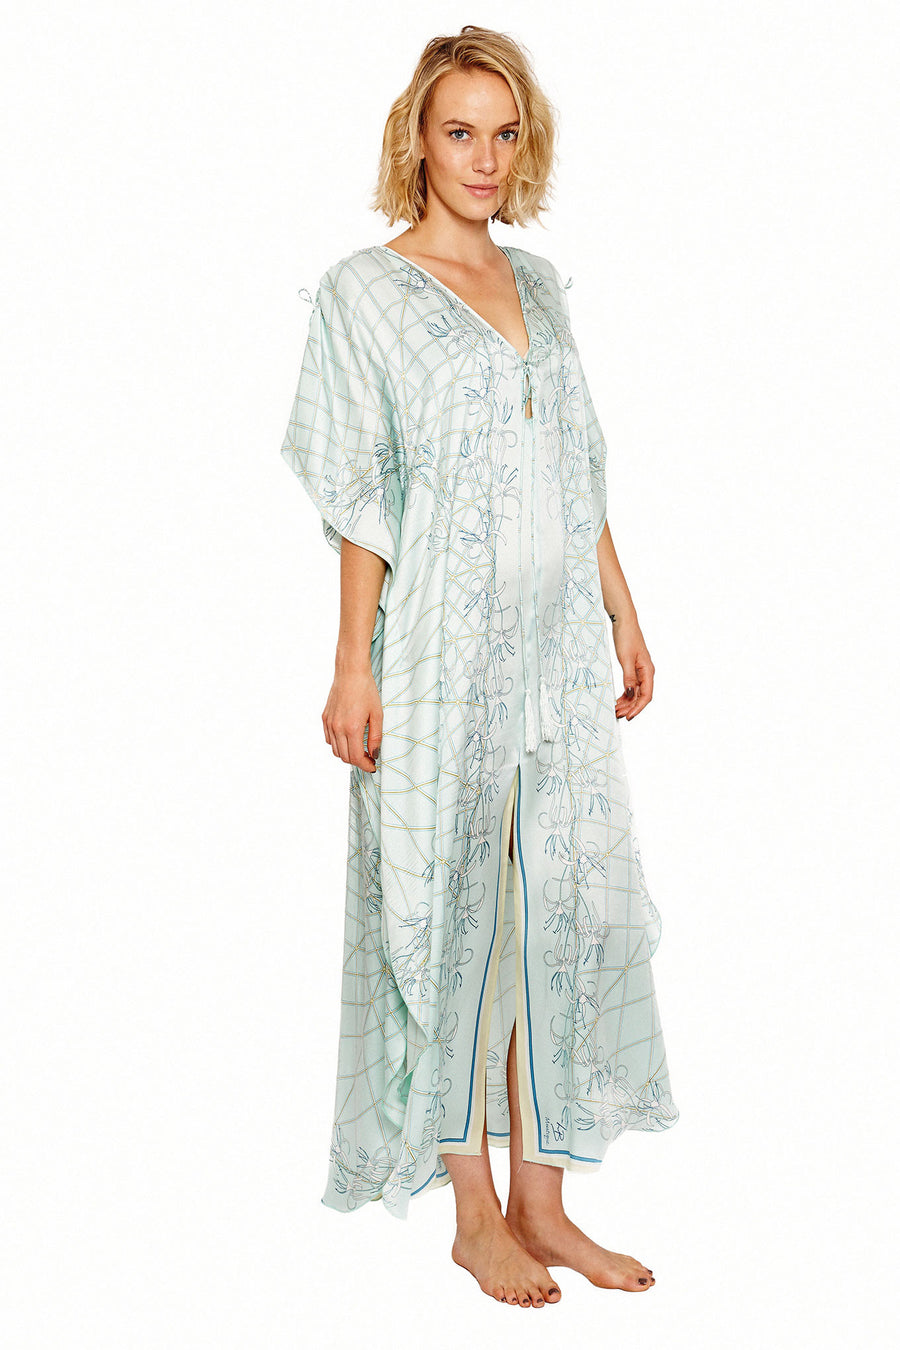 Lotty B Long Kaftan in Silk Crepe-de-Chine (Spiderlily Pale Blue)